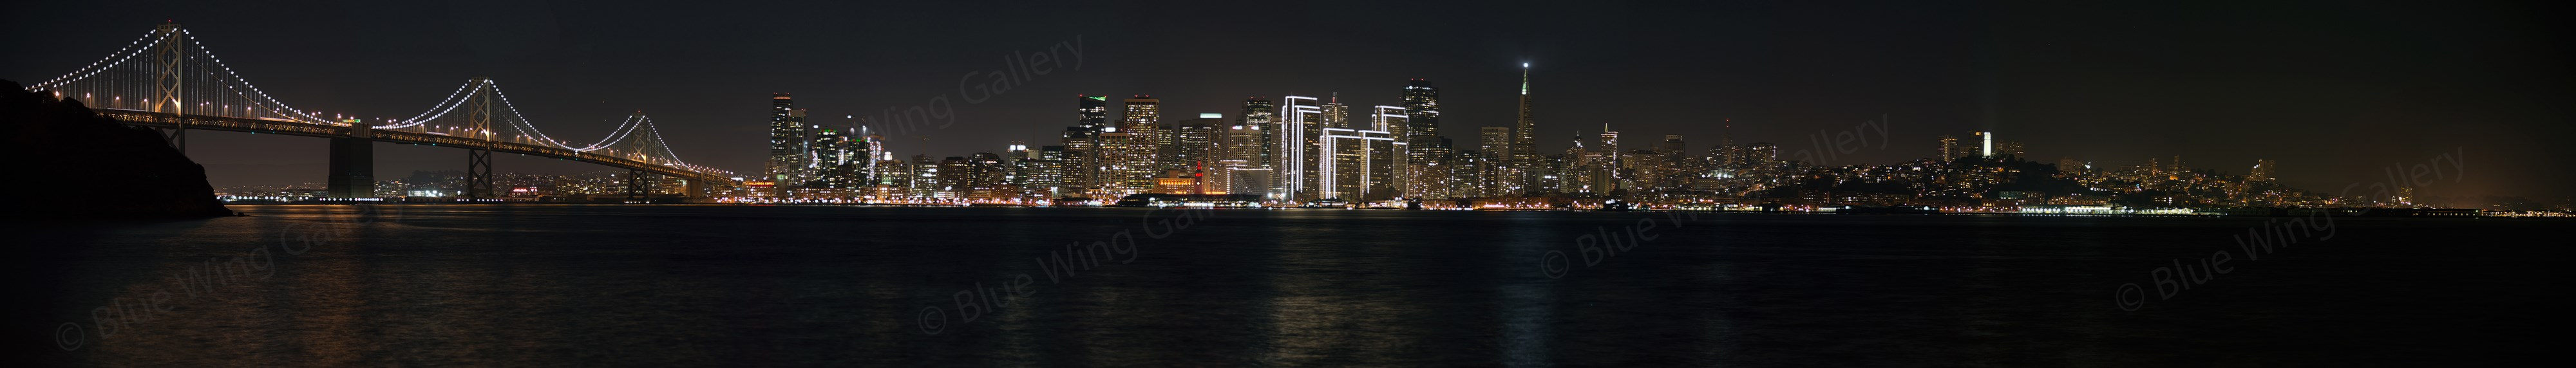 San Francisco City Lights Bay Bridge